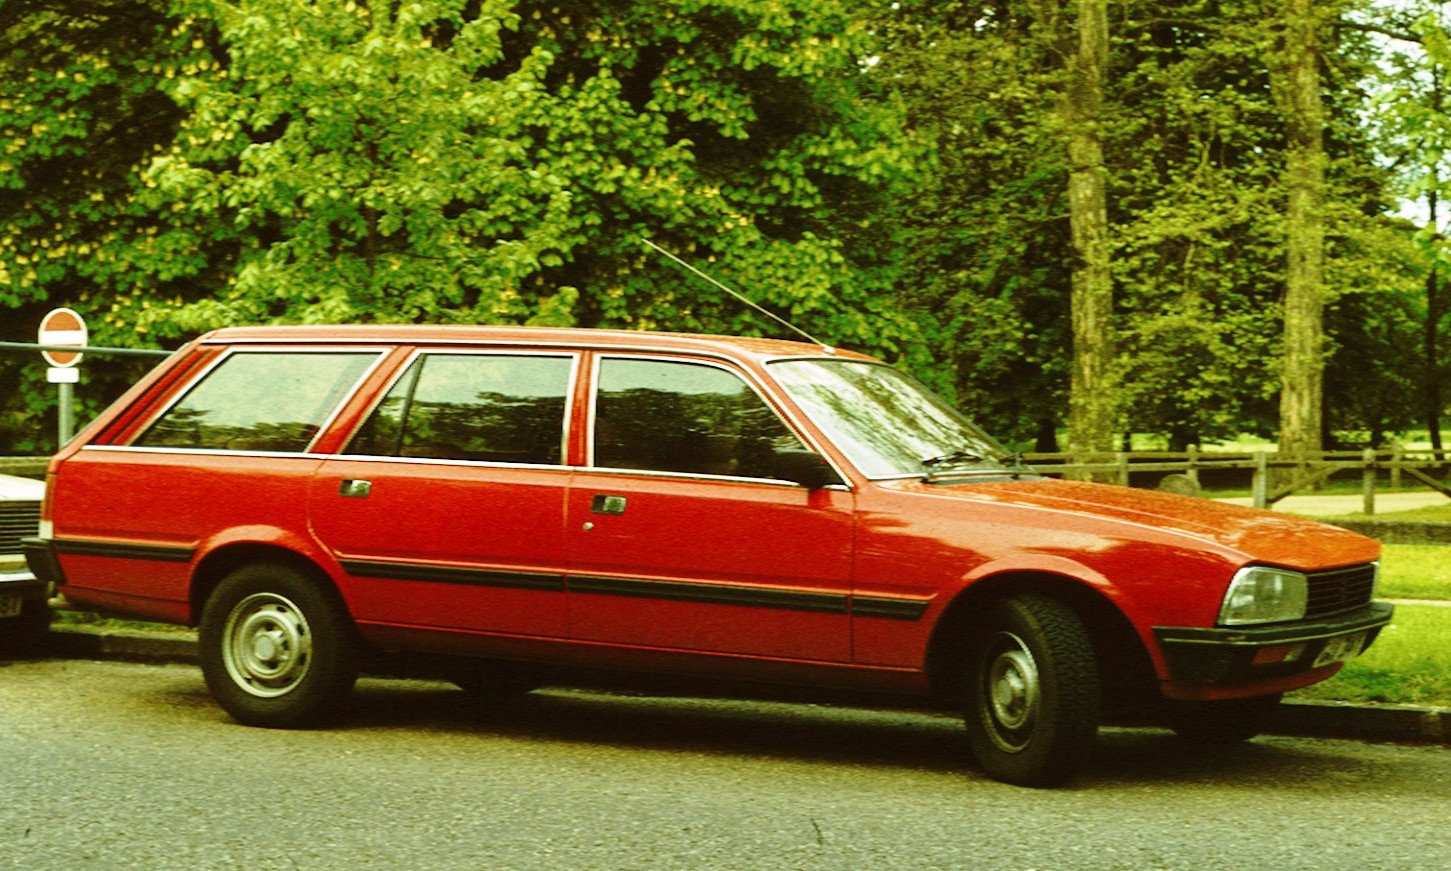 PEUGEOT 505 red